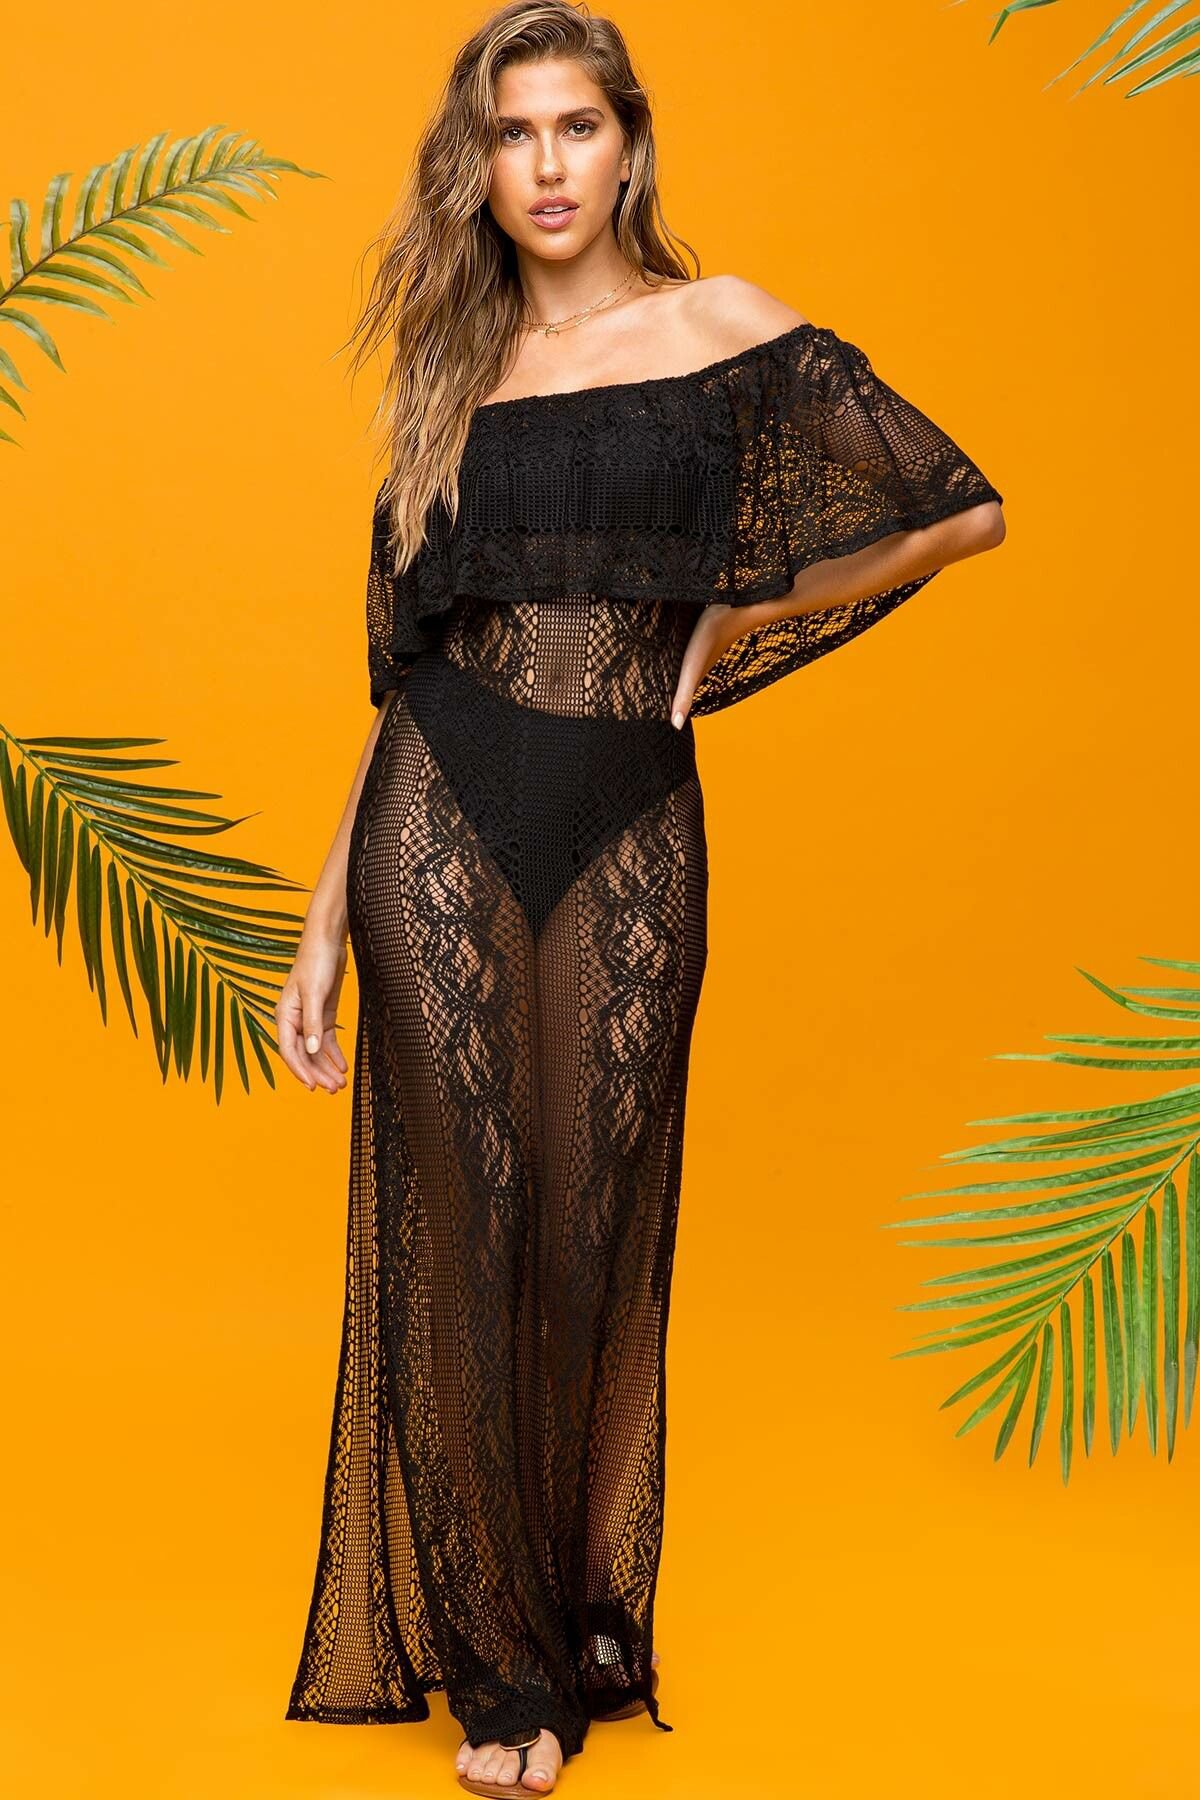 Kara Del Toro – A'Gaci Beachwear 2019 Collection